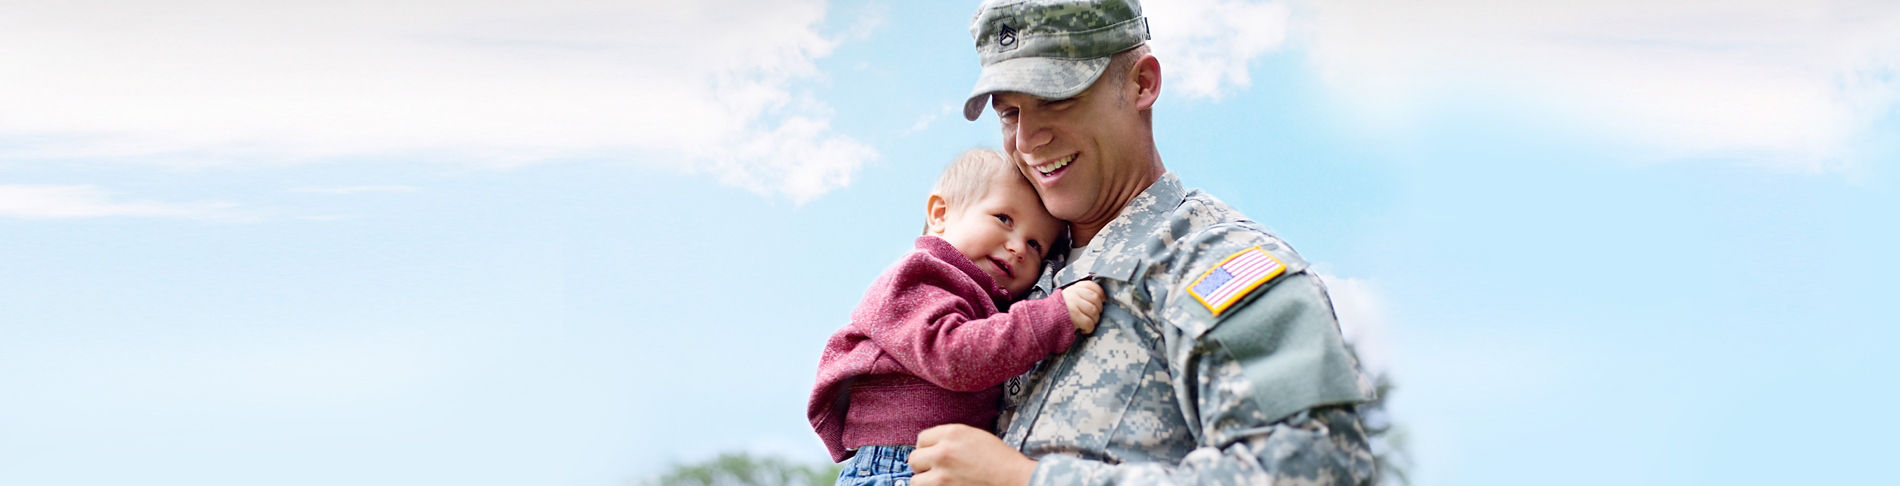 Military Discounts and career programs for service members and veterans